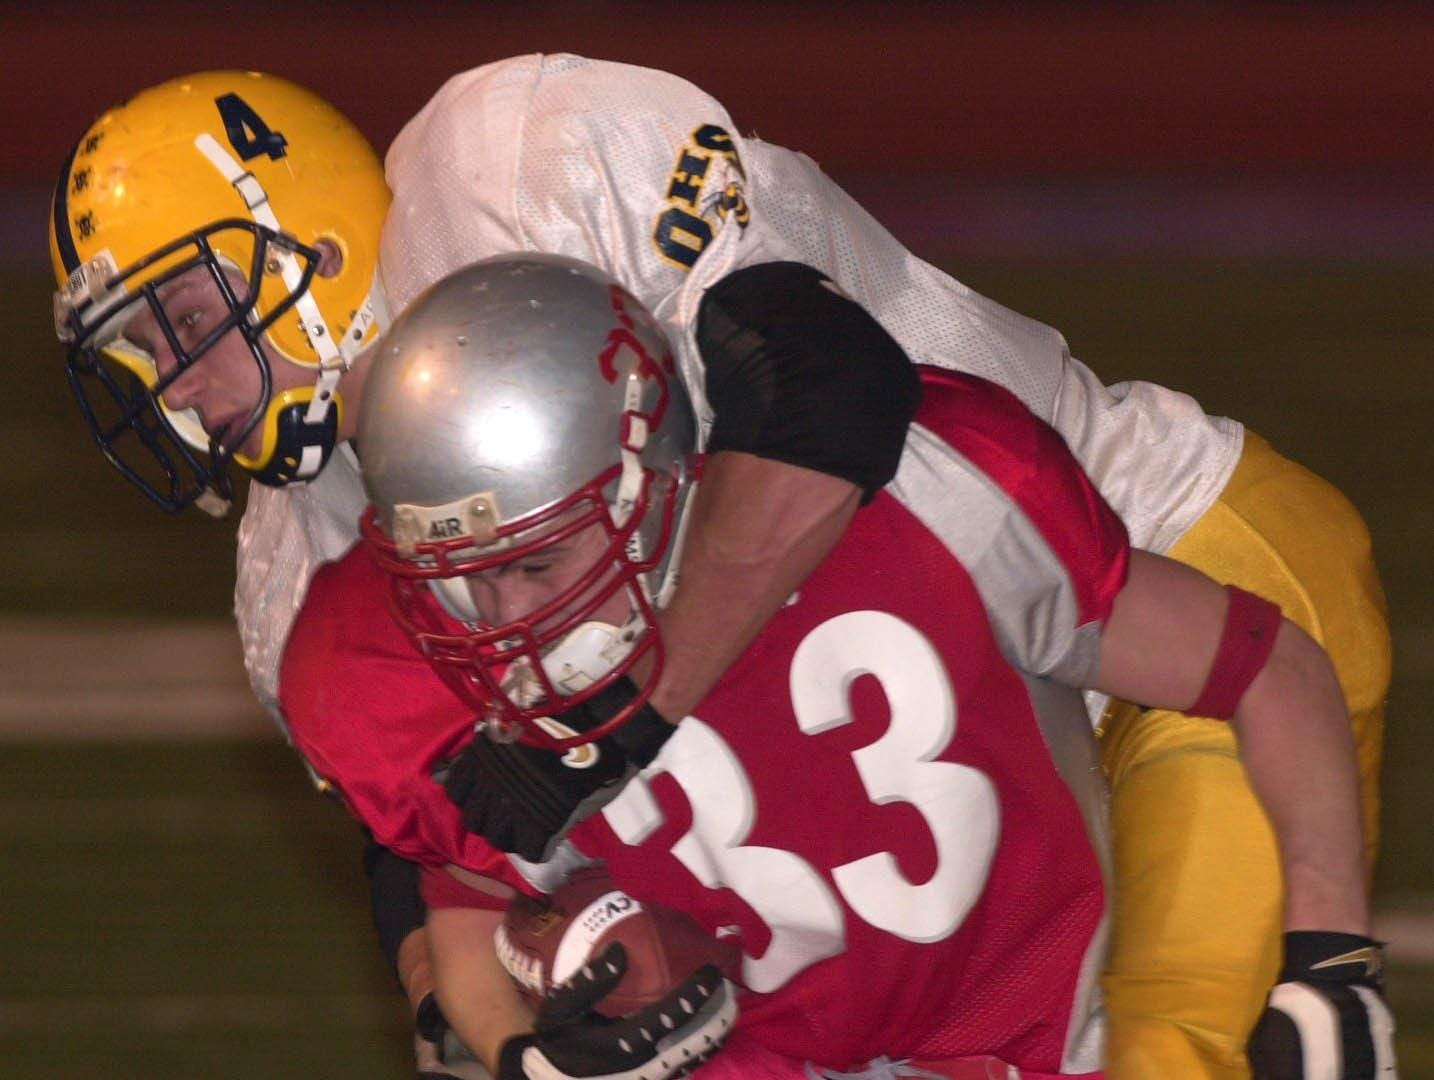 From 2001: Chenango Valley's Josh Burke is wrapped up by Oneonta's James Hurtubise in the second quarter at Alumni field in Binghamton Friday night.